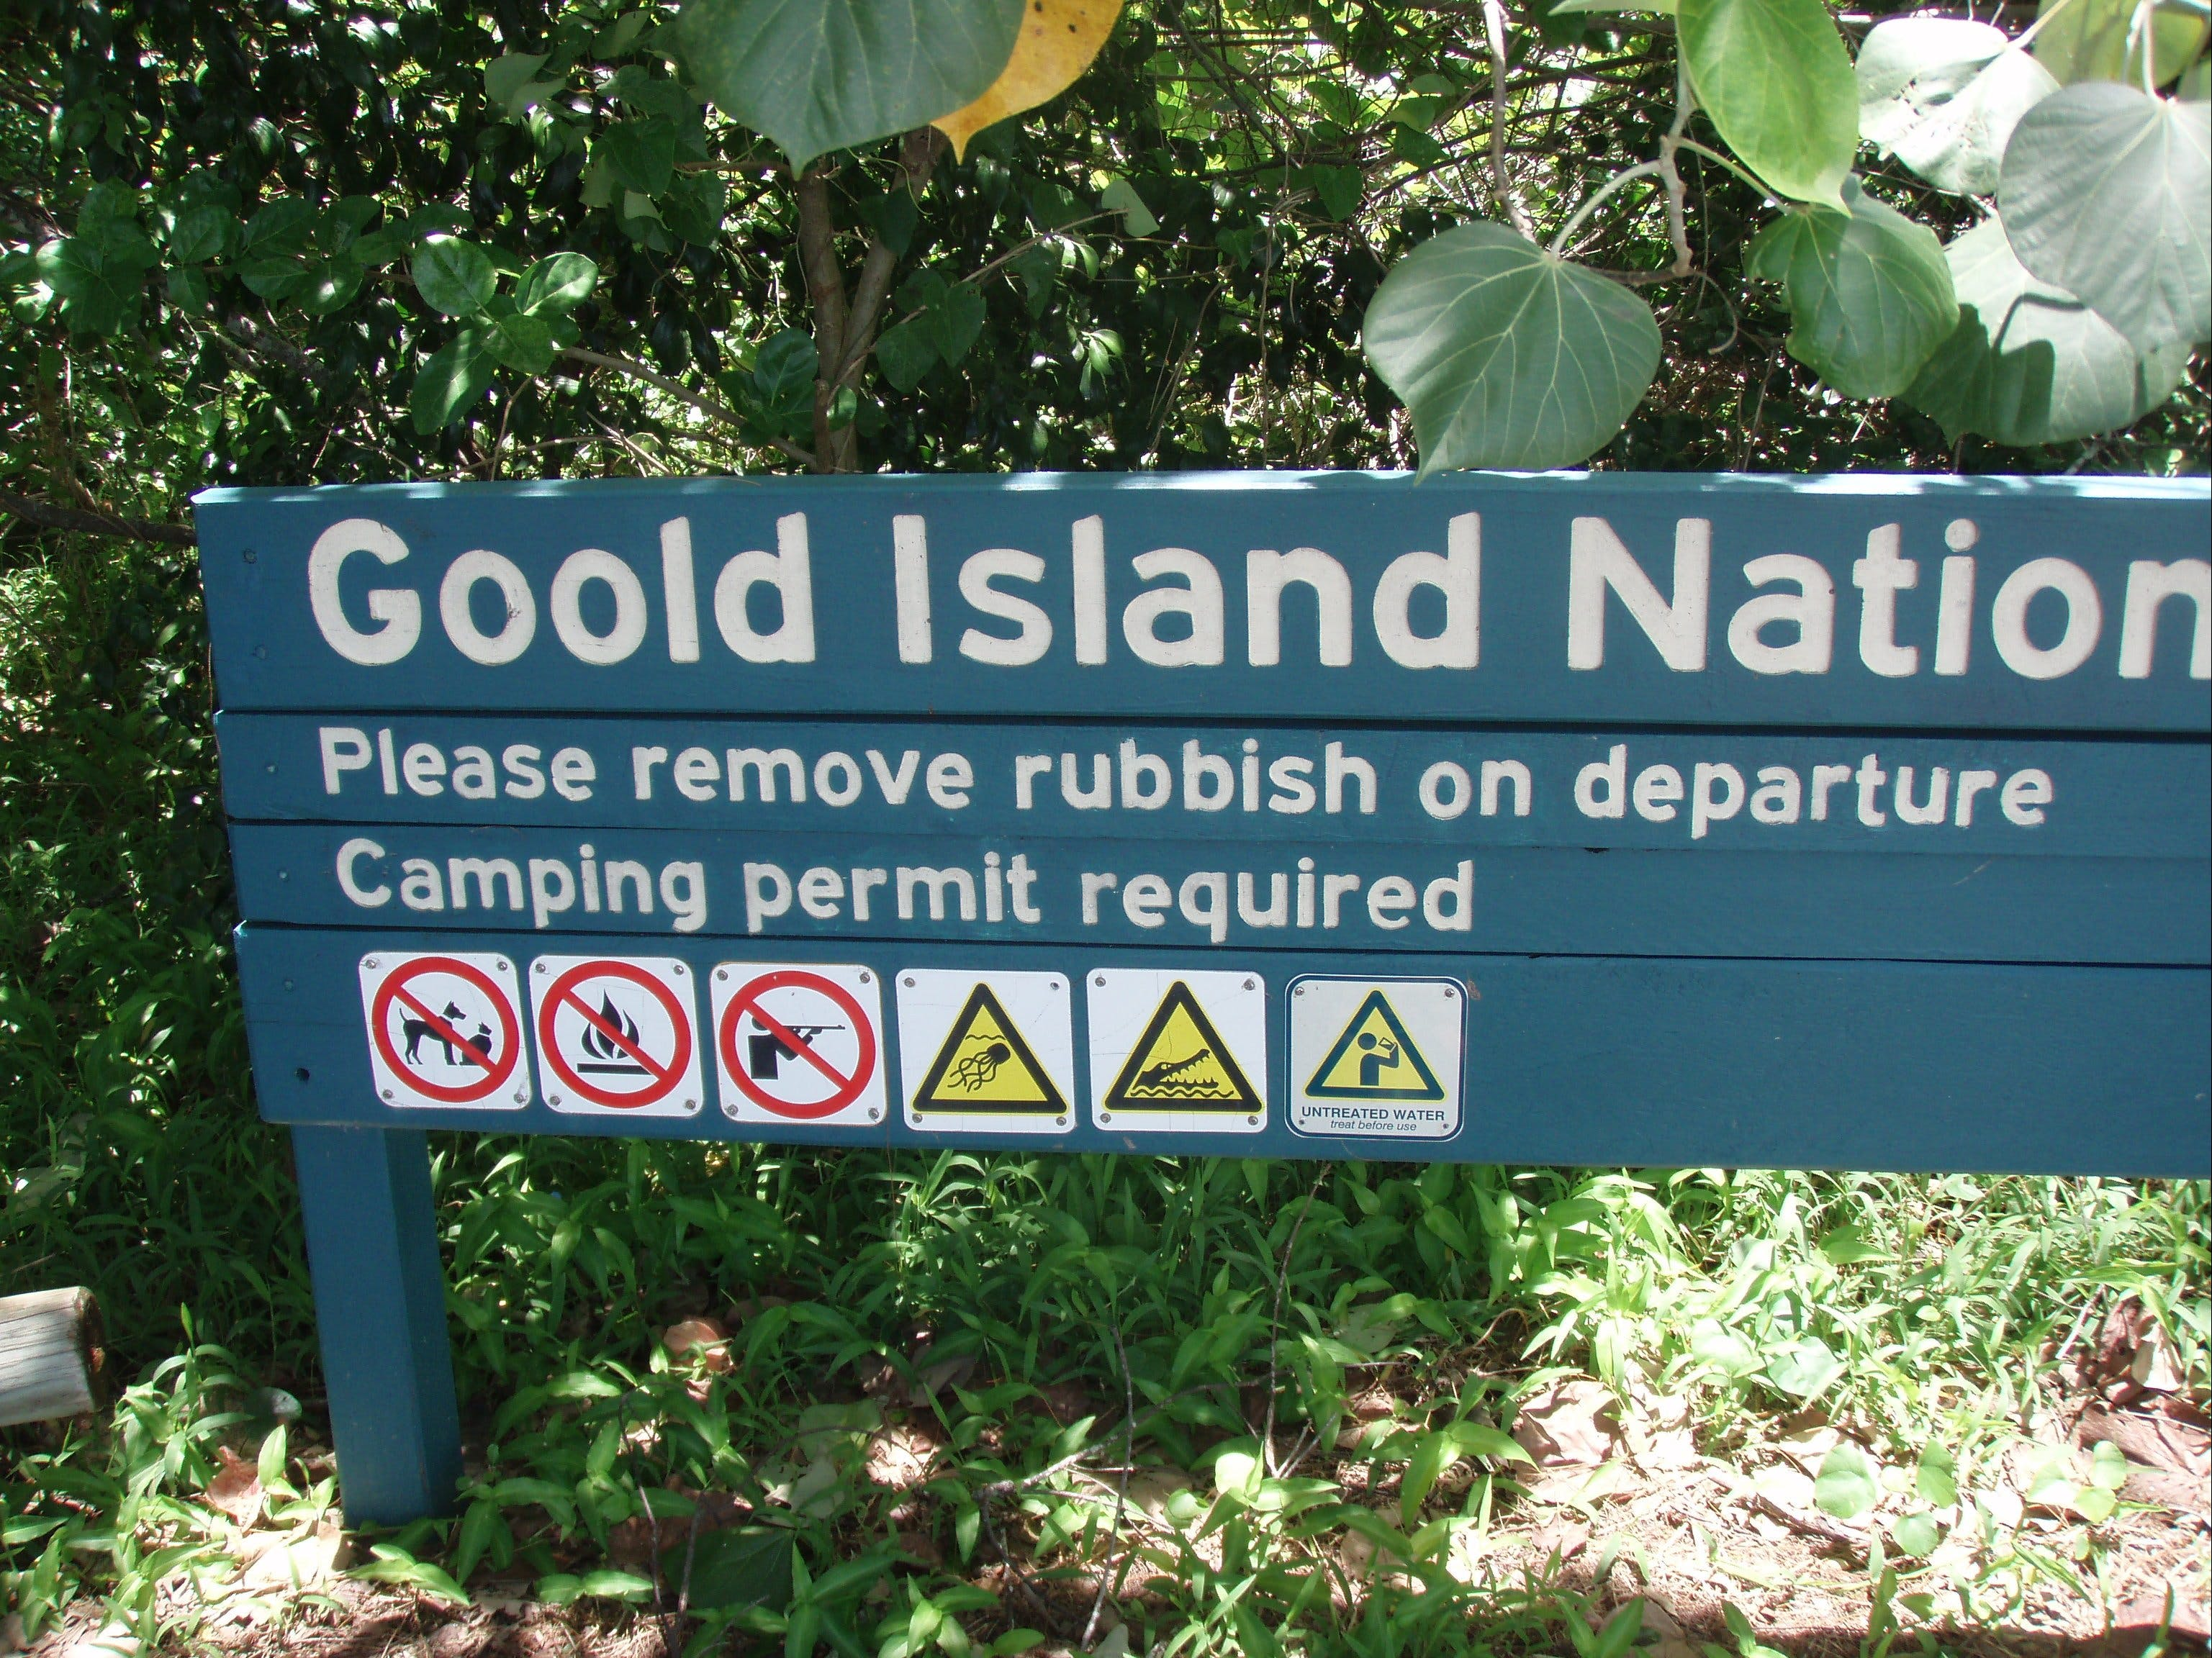 Goold Island National Park - Port Augusta Accommodation